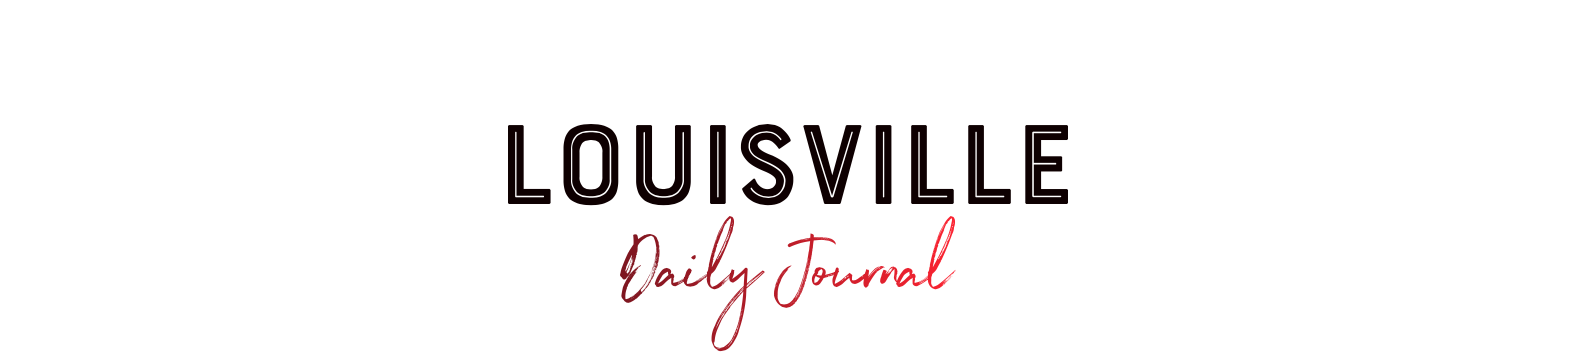 Louisville Daily Journal